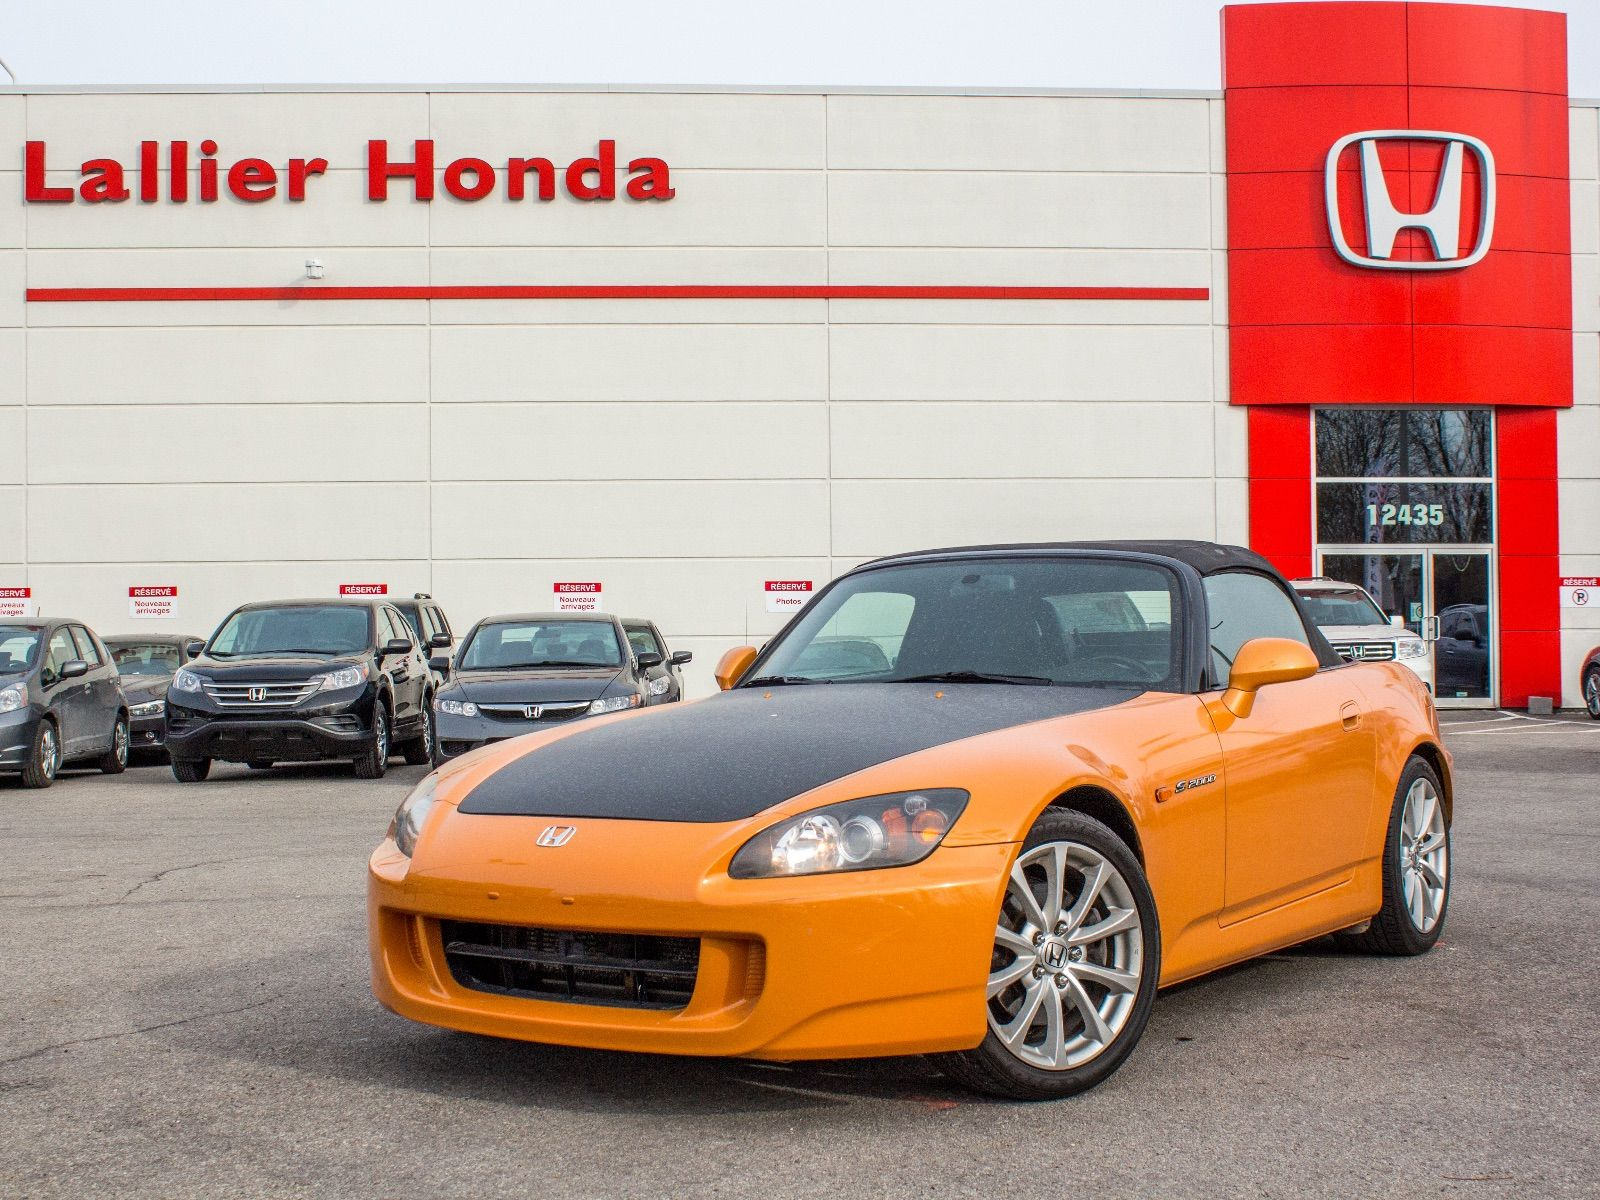 honda s2000 canadienne 2007 d 39 occasion lallier honda montreal. Black Bedroom Furniture Sets. Home Design Ideas